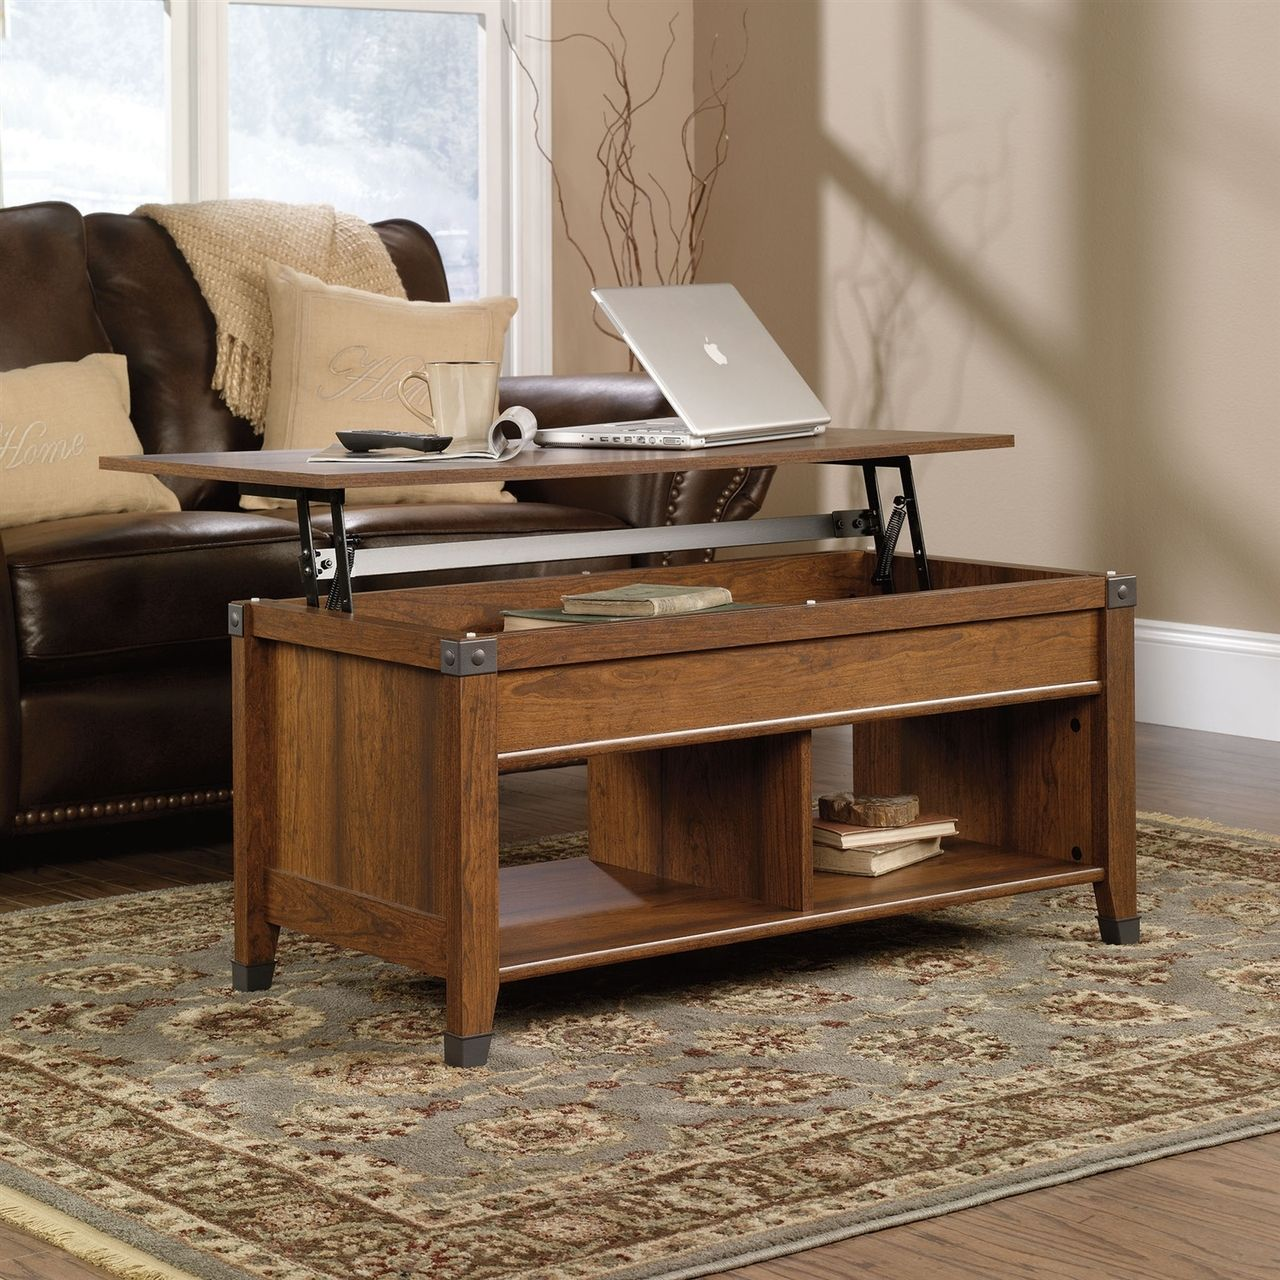 Ringgold Extendable Coffee Table With Storage: Lift-Top Coffee Table In Washington Cherry Finish